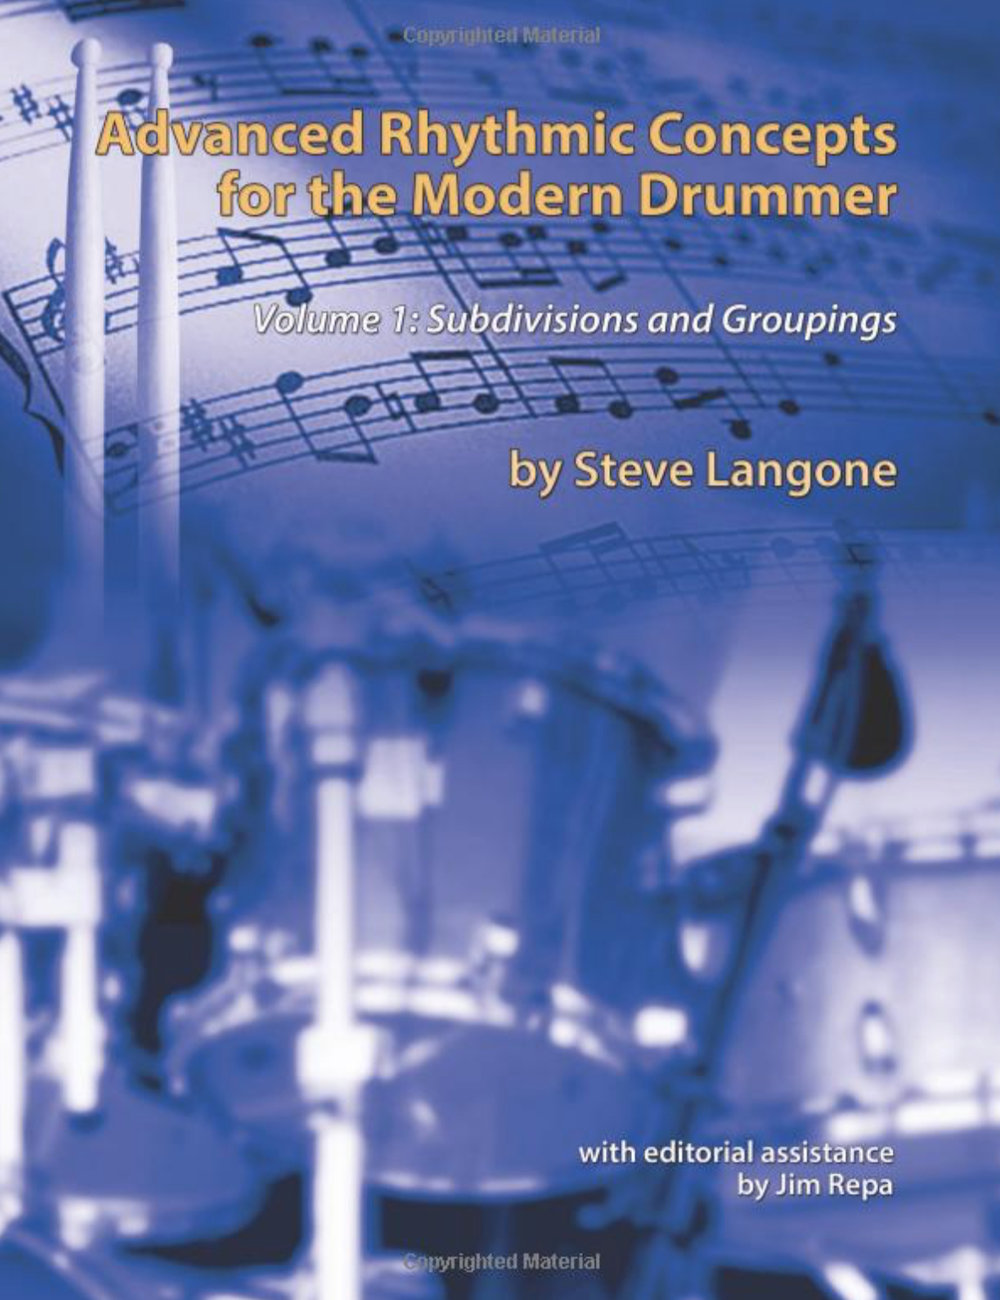 Volume 1 - The book introduces rhythmic concepts that can be used by drummers or any musician to expand his or her rhythmic repertoire for improvisation or composition. It combines concepts taught to the author by Alan Dawson with South Indian Konnakol syllables. It is a comprehensive study of polyrhythms that allows drummers to delve deeply into modern rhythmic concepts.Available from Amazon.com as softcover book.Available from Amazon.com as Digital - Kindle book.Paperback: 200 pagesLanguage: EnglishISBN-10: 1499374593ISBN-13: 978-1499374599Product Dimensions: 8.5 x 0.5 x 11 inchesTable of Contents PDFVideo demonstrations of excerpts from Vol 1.